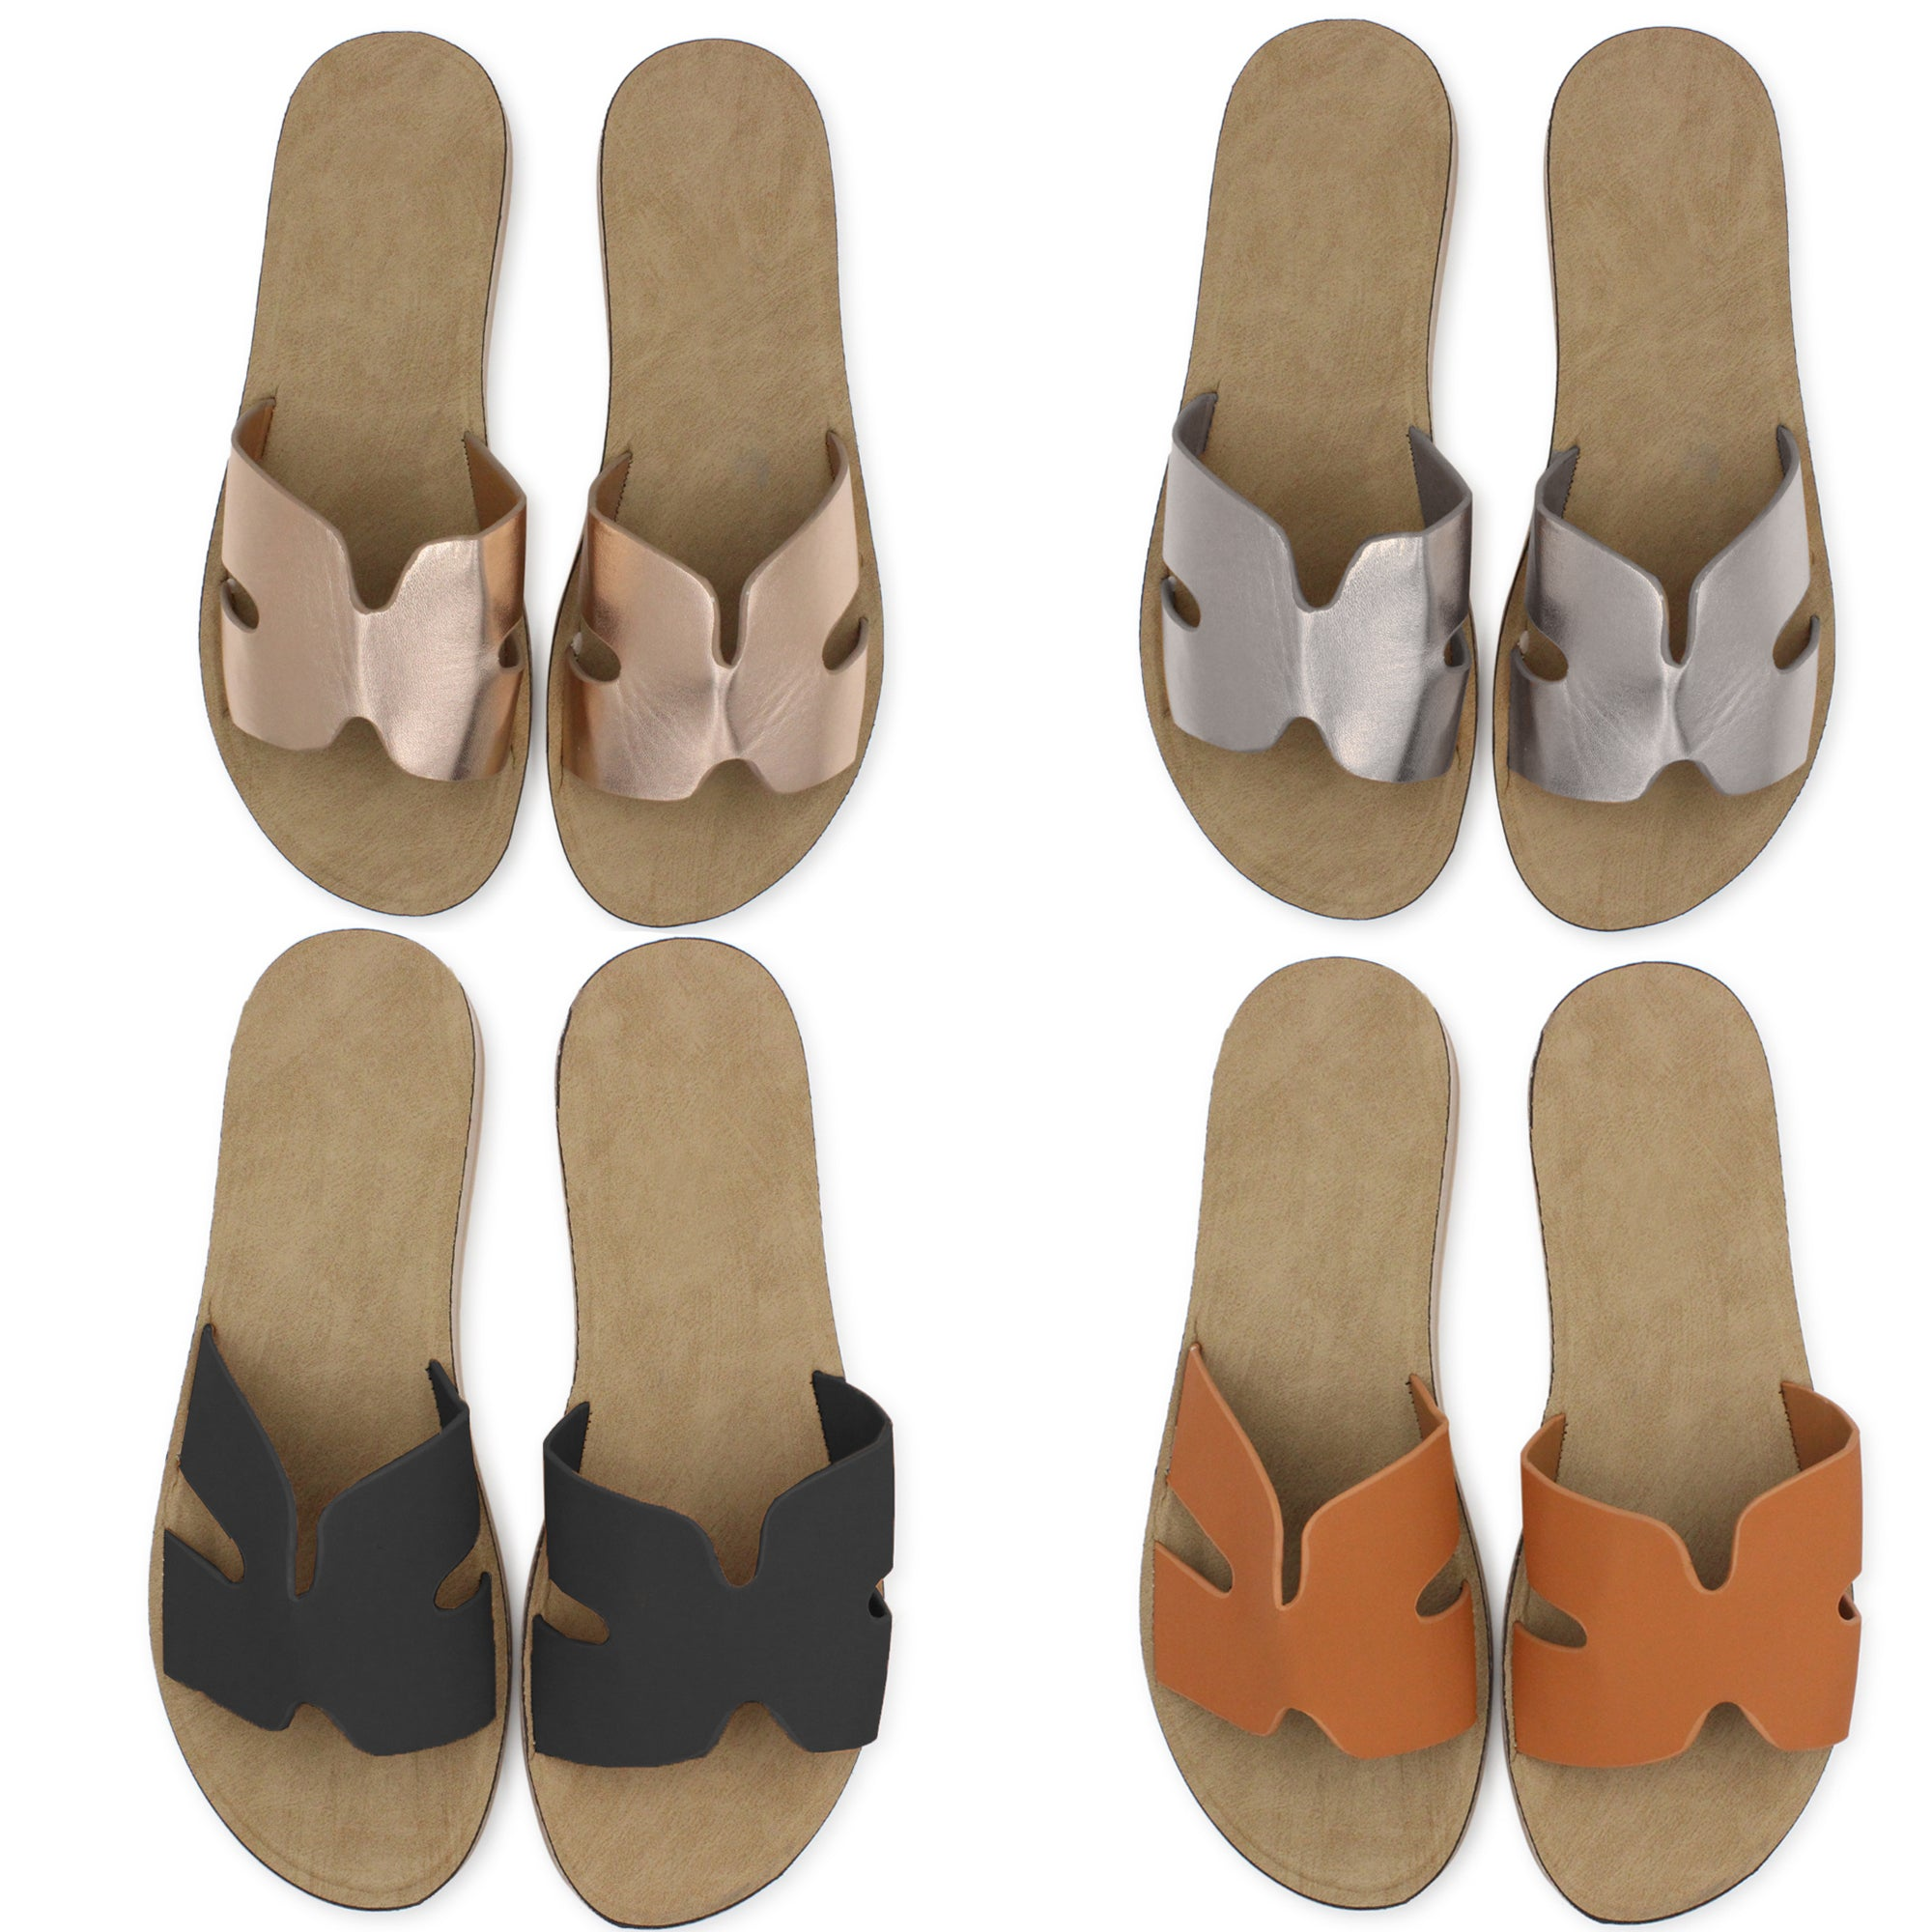 Women's Leather Comfort Slip On Sandals